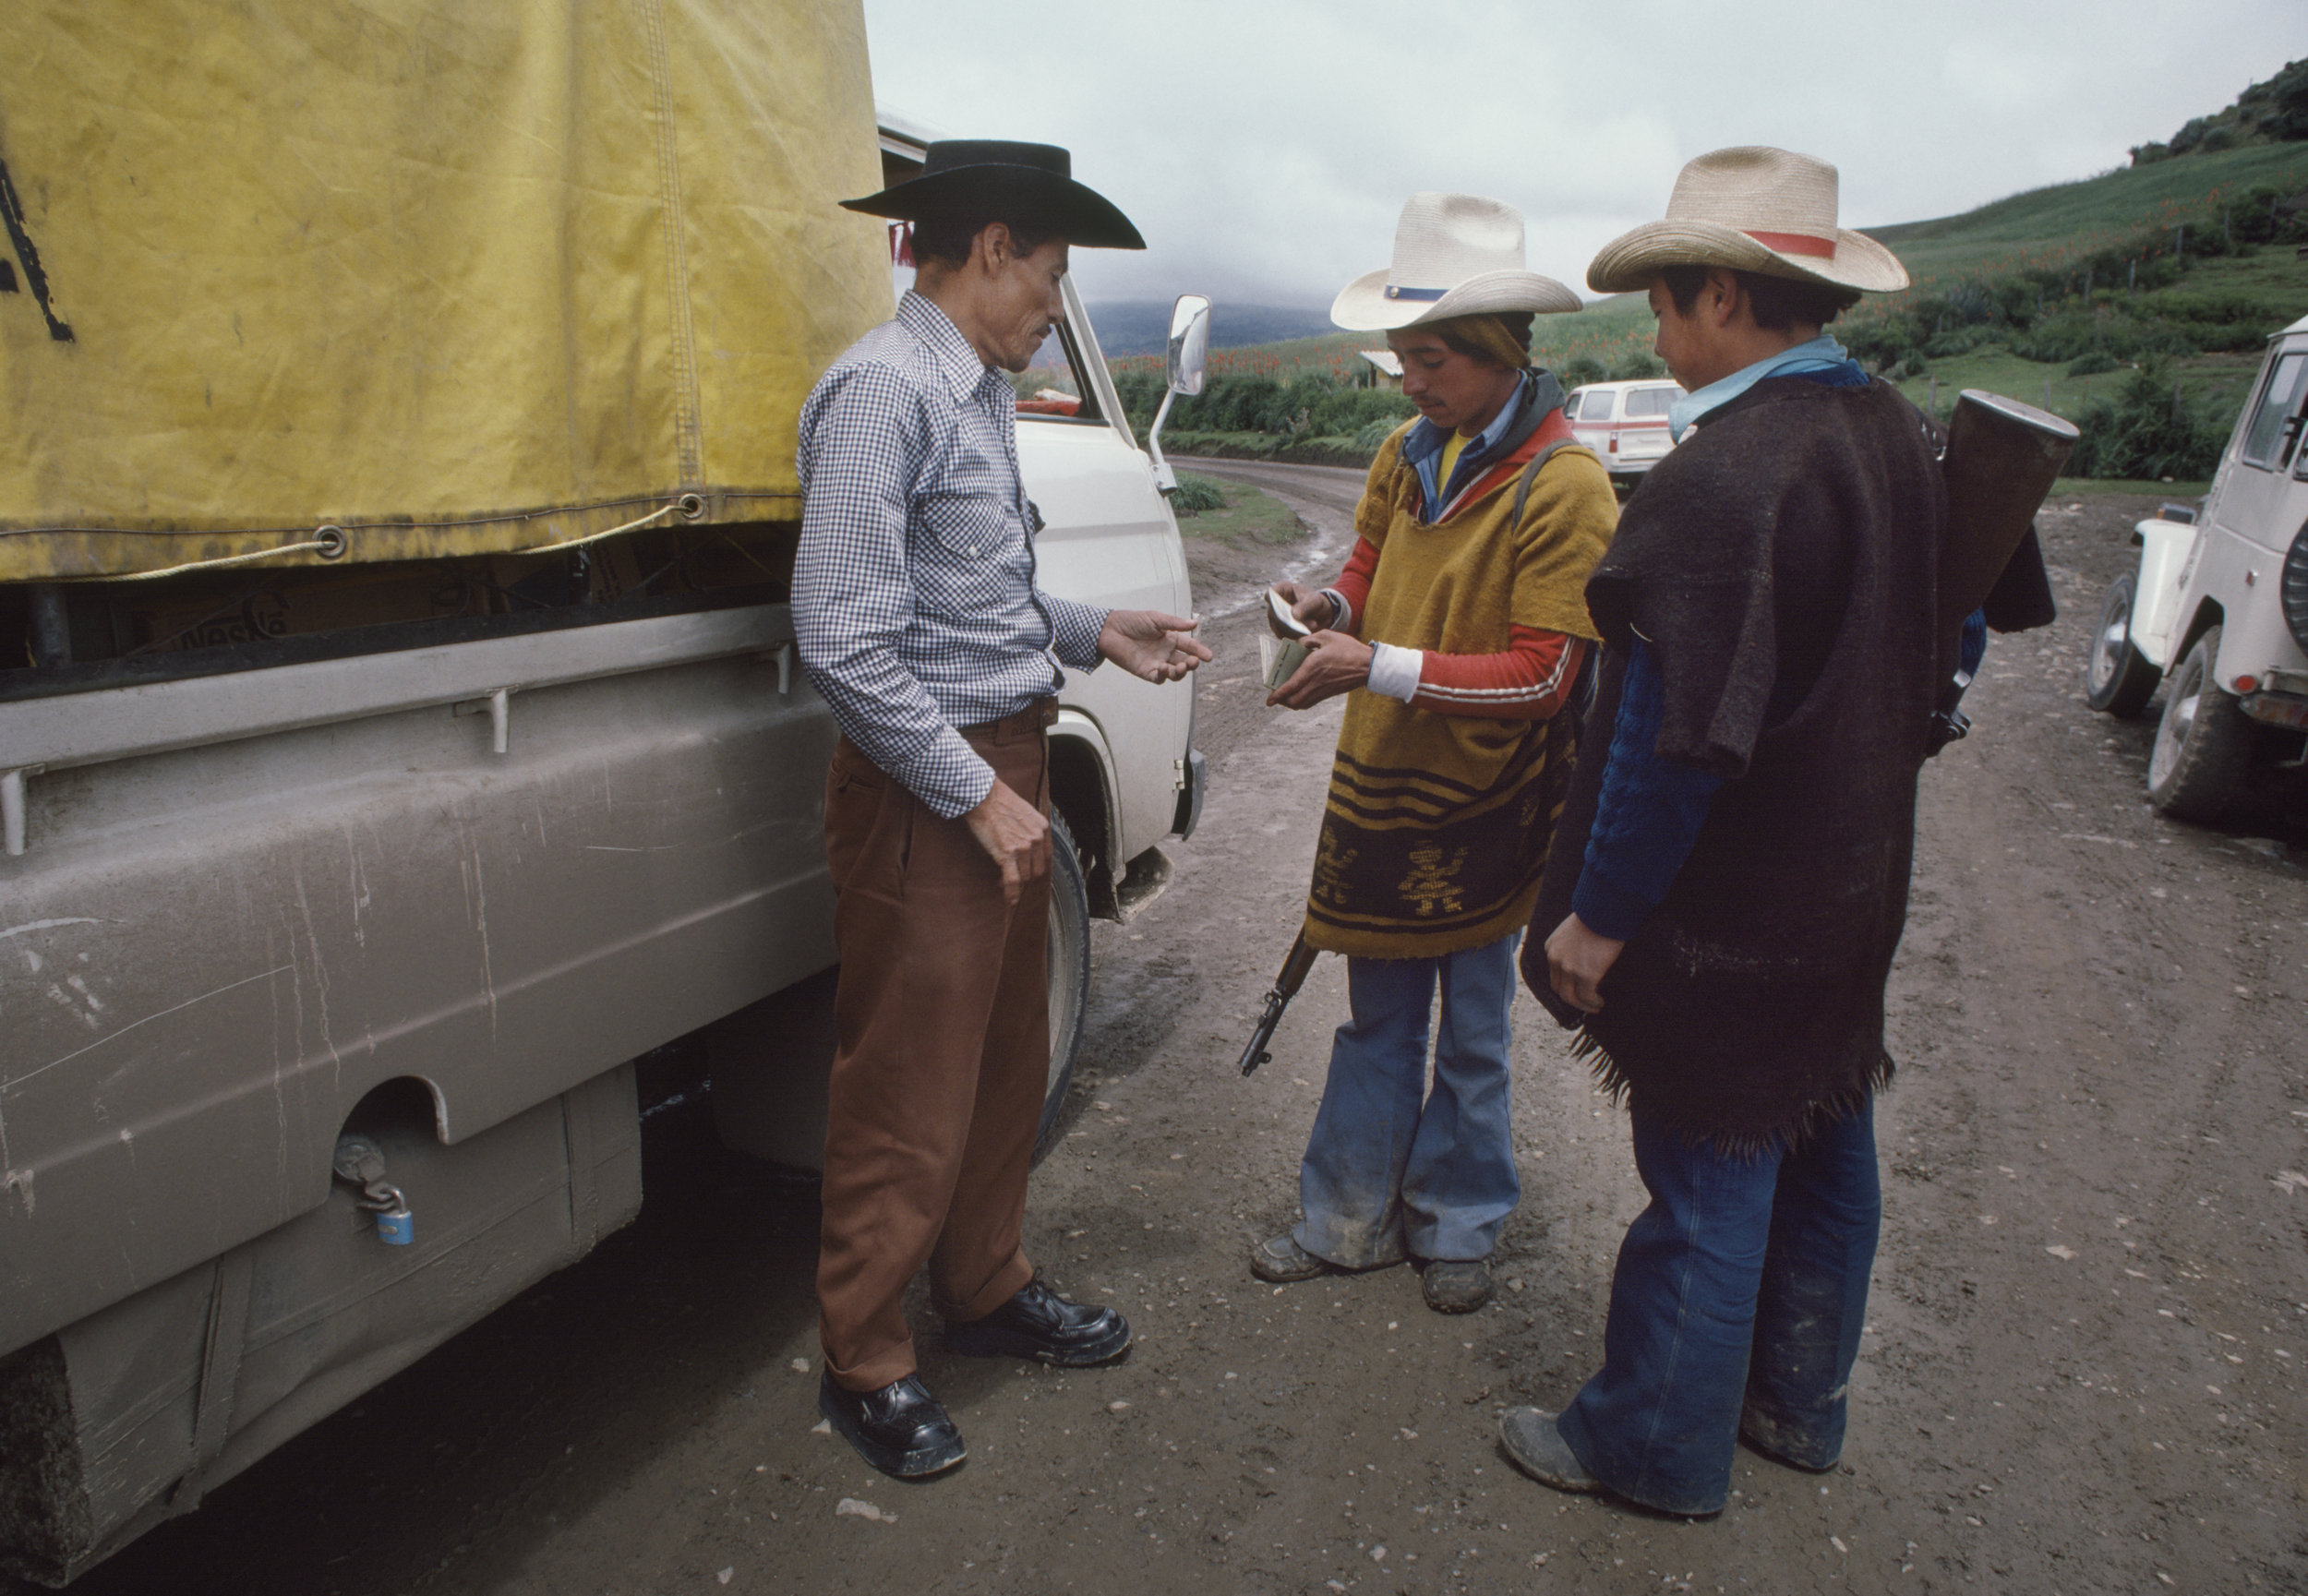 Members of a local Civil Defense Patrol check a truck driver's identity papers along a mountain road in rural Huehuetenango, Guatemala, September 1, 1982.